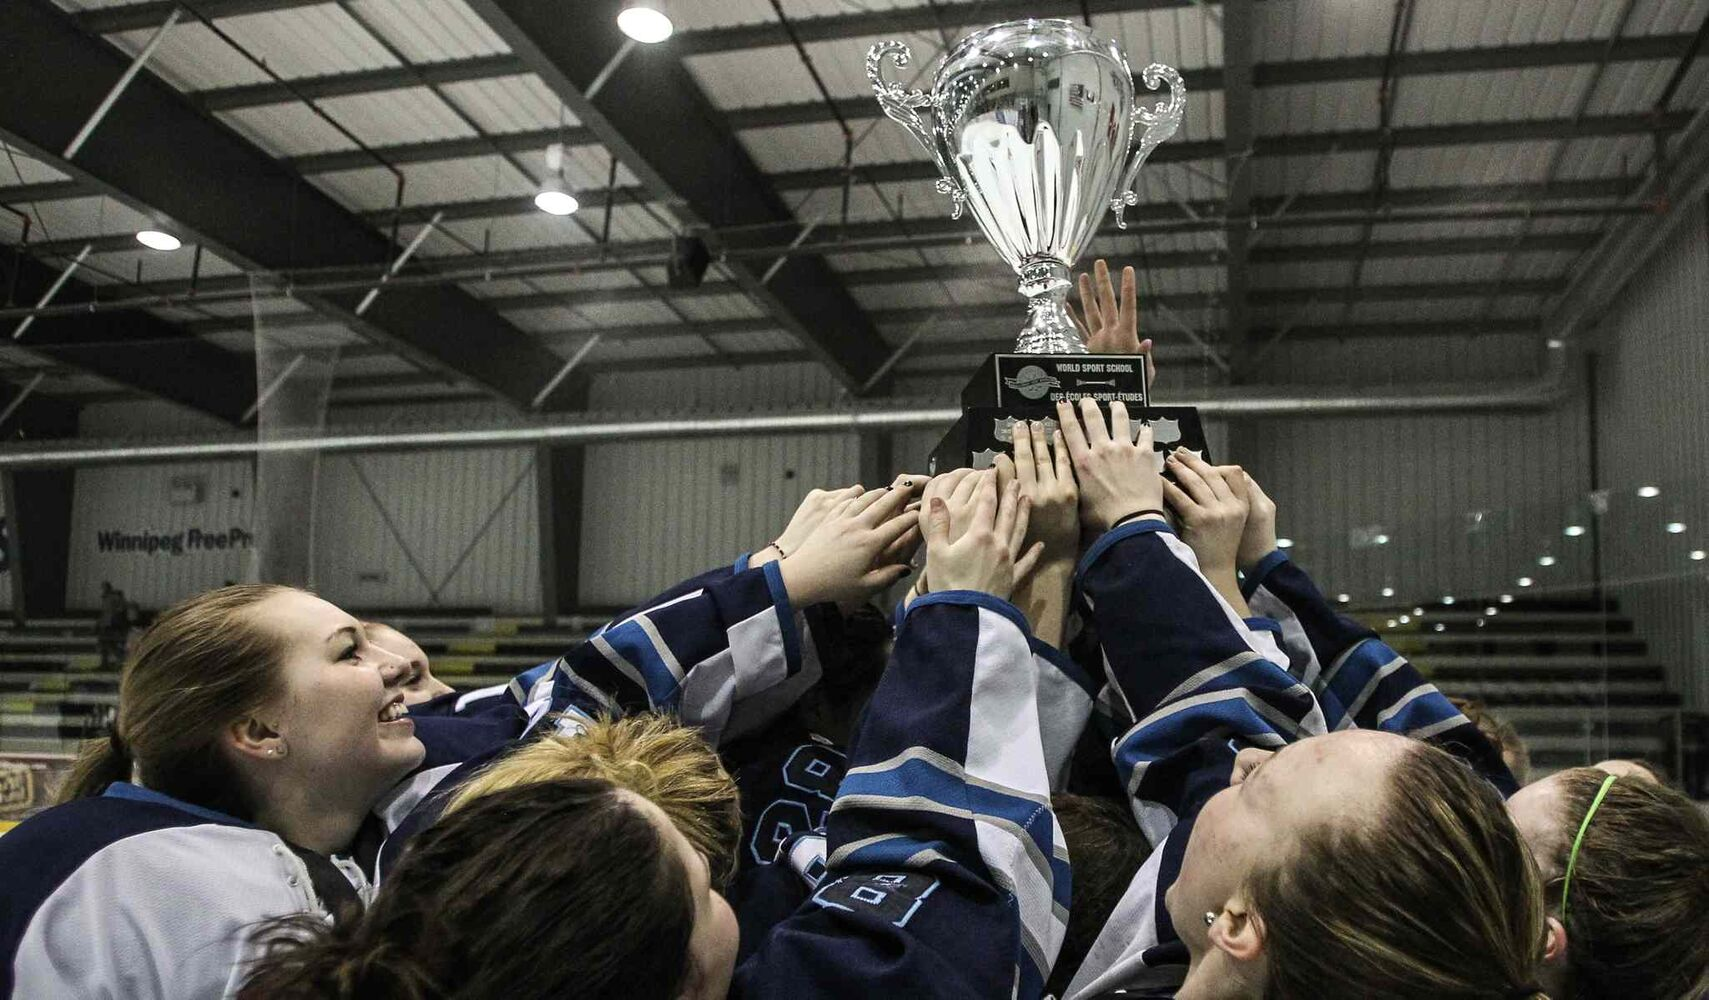 The Shaftesbury Titans celebrate their championship. (MIKE DEAL / WINNIPEG FREE PRESS)